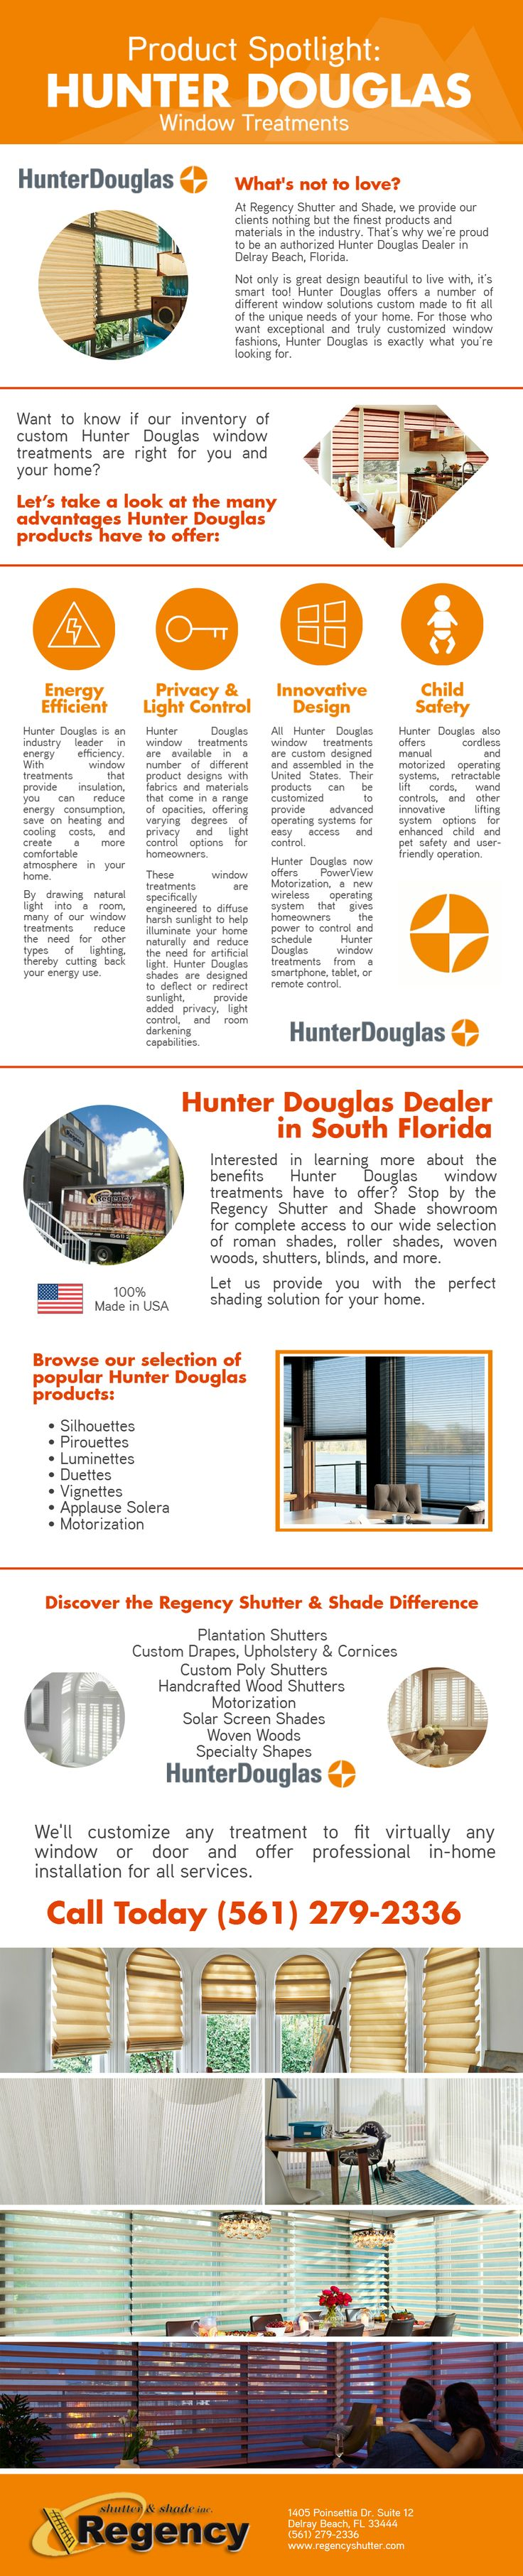 We bring you a product spotlight on hunter douglas window treatments call regency shutter shade to learn more about our hunter douglas products